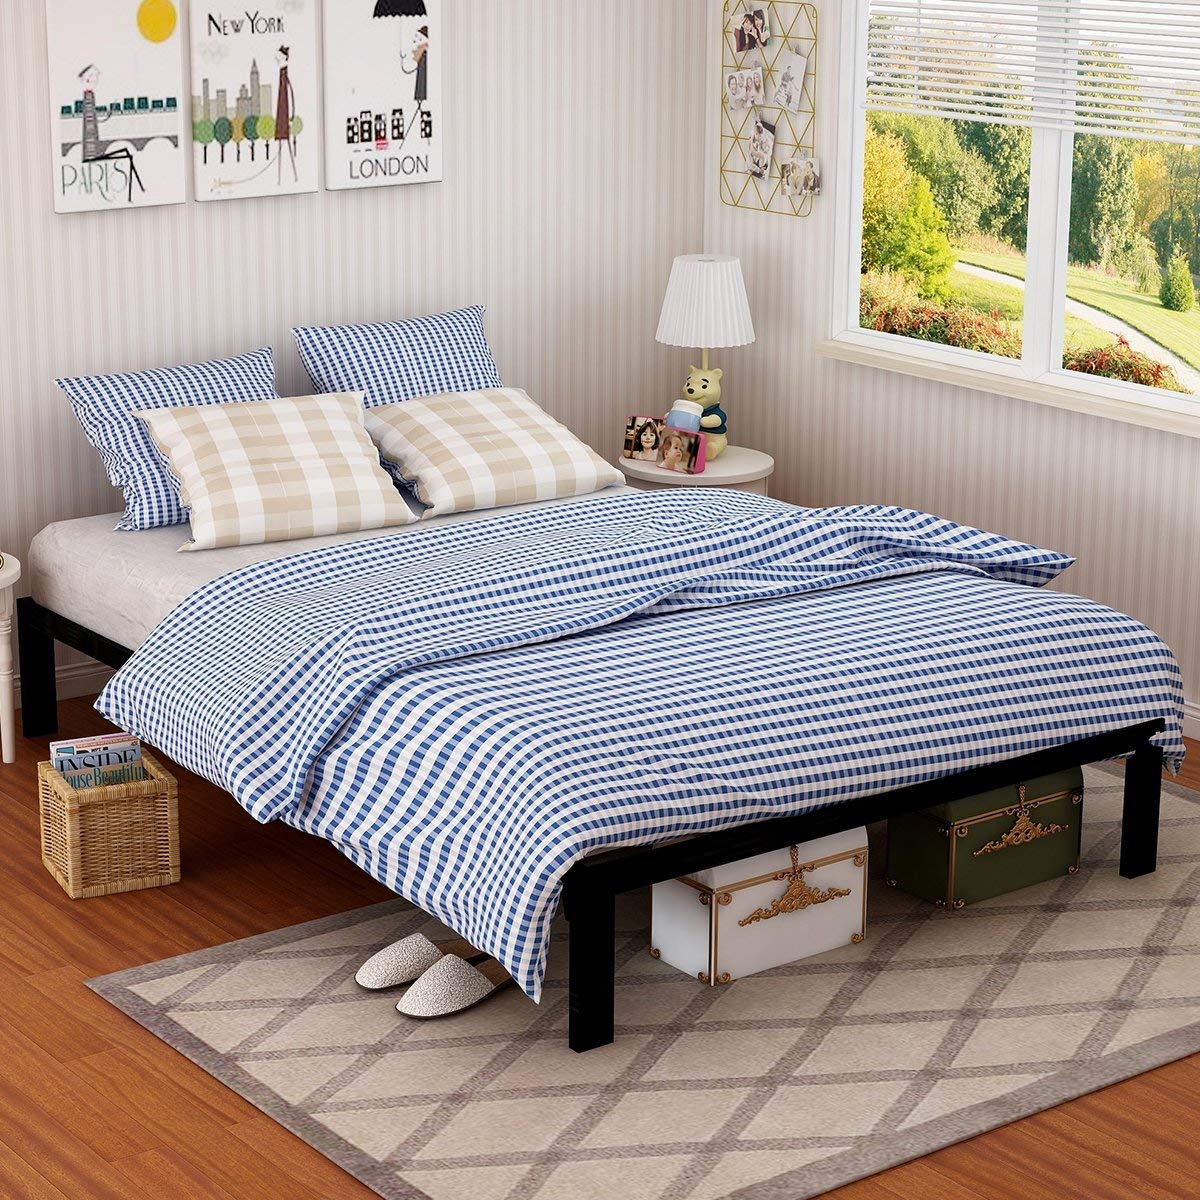 Metal Bed Frame Steel Queen Size Decor Platform Iron Base with Headboard and Footboard Slats Legs Cover Black 629 (Queen)